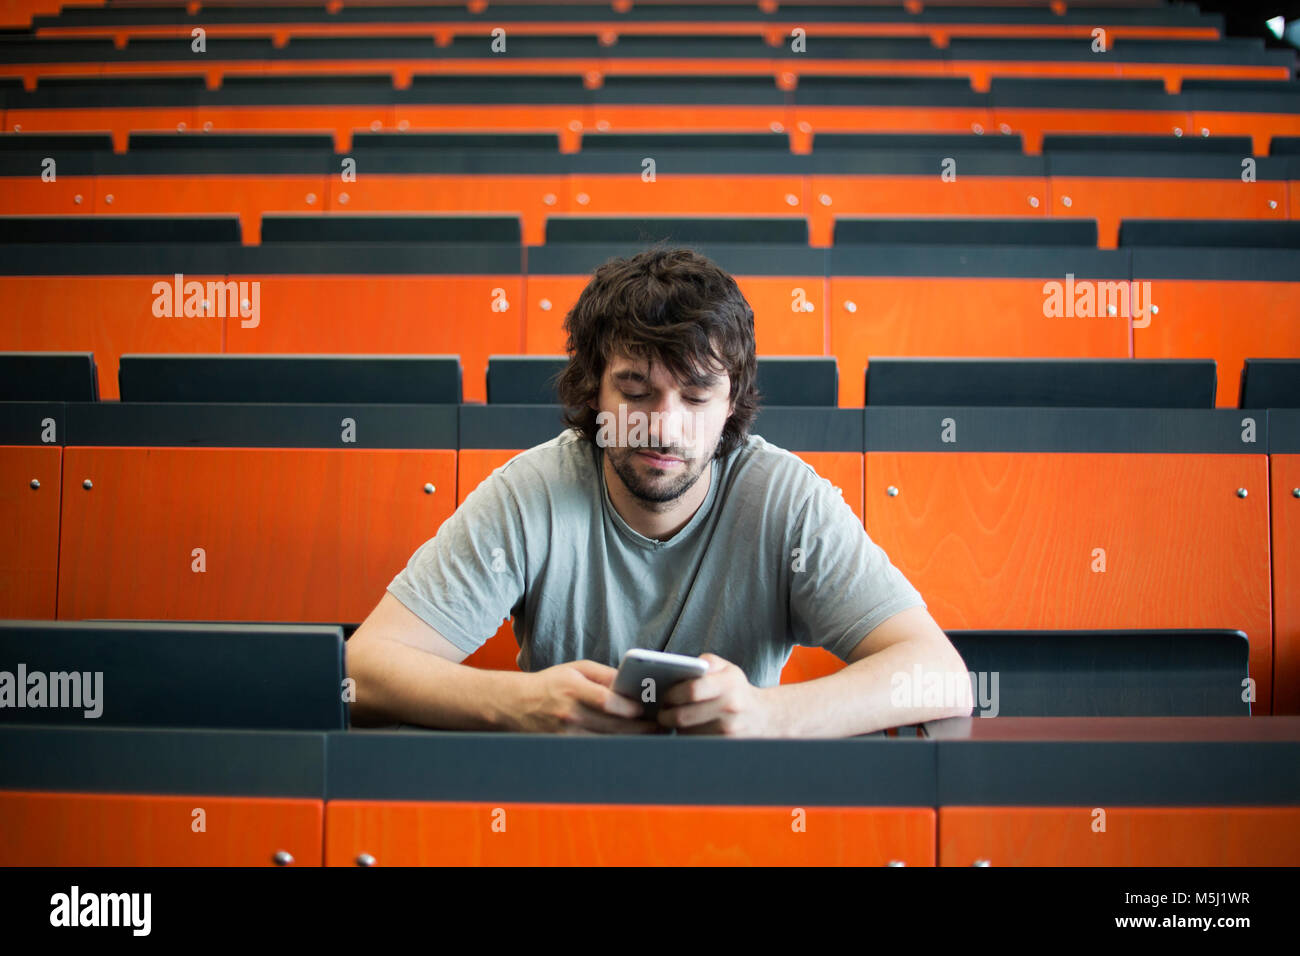 Portrait of student in auditorium at university looking at cell phone - Stock Image